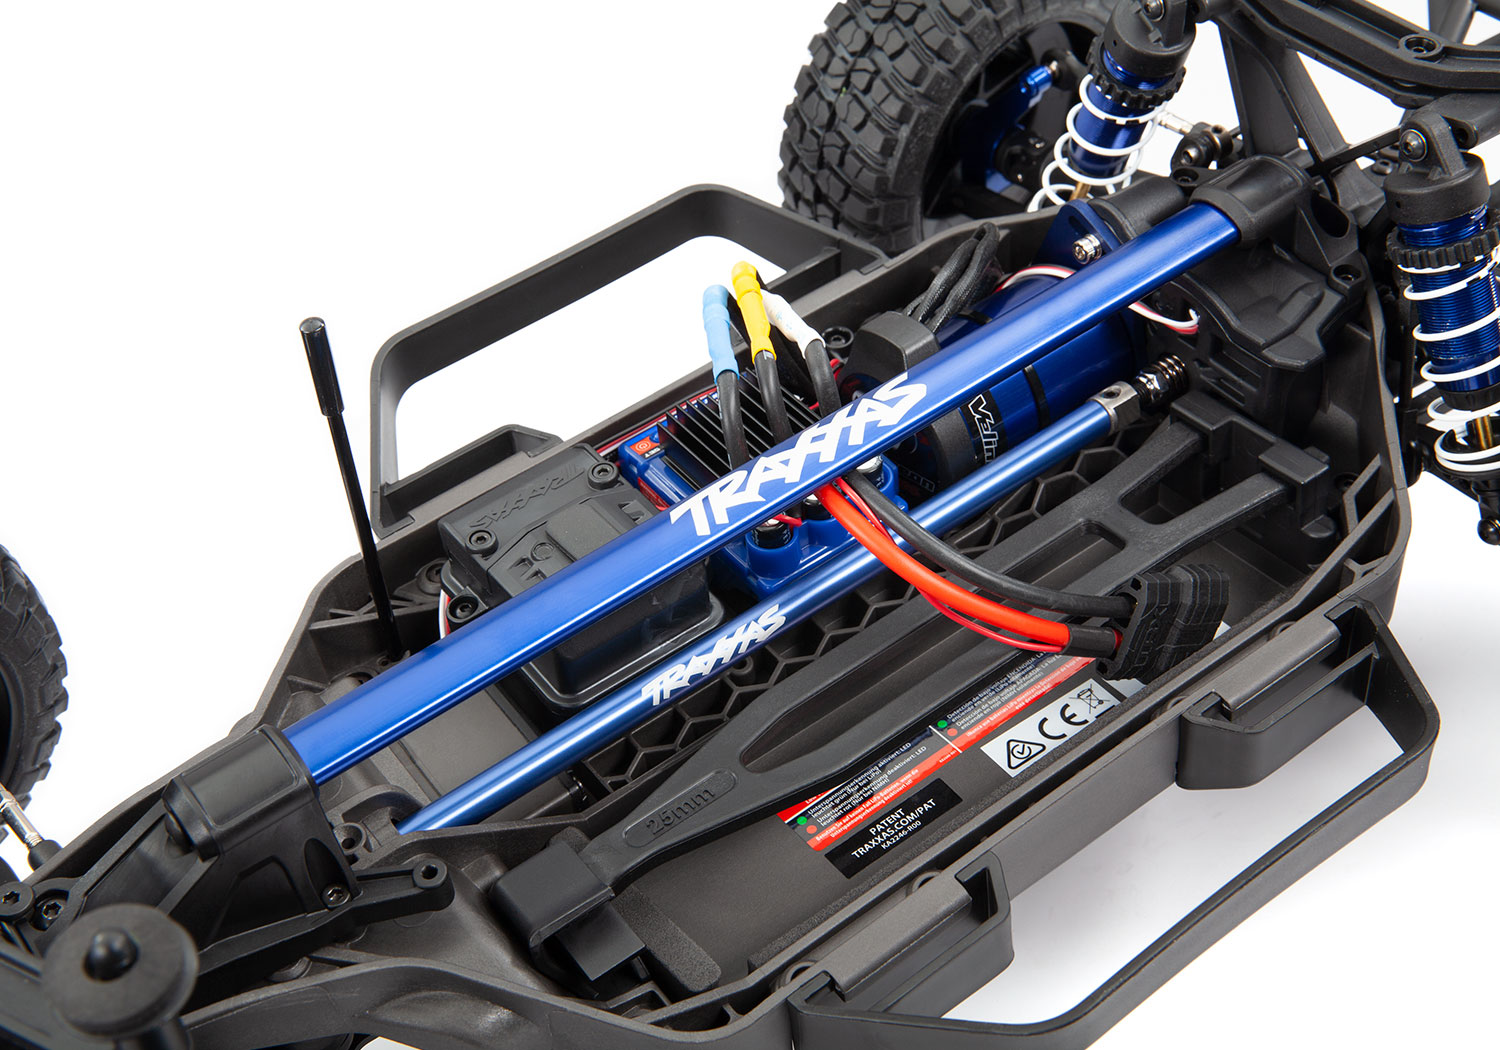 Slash Ultimate installed chassis brace